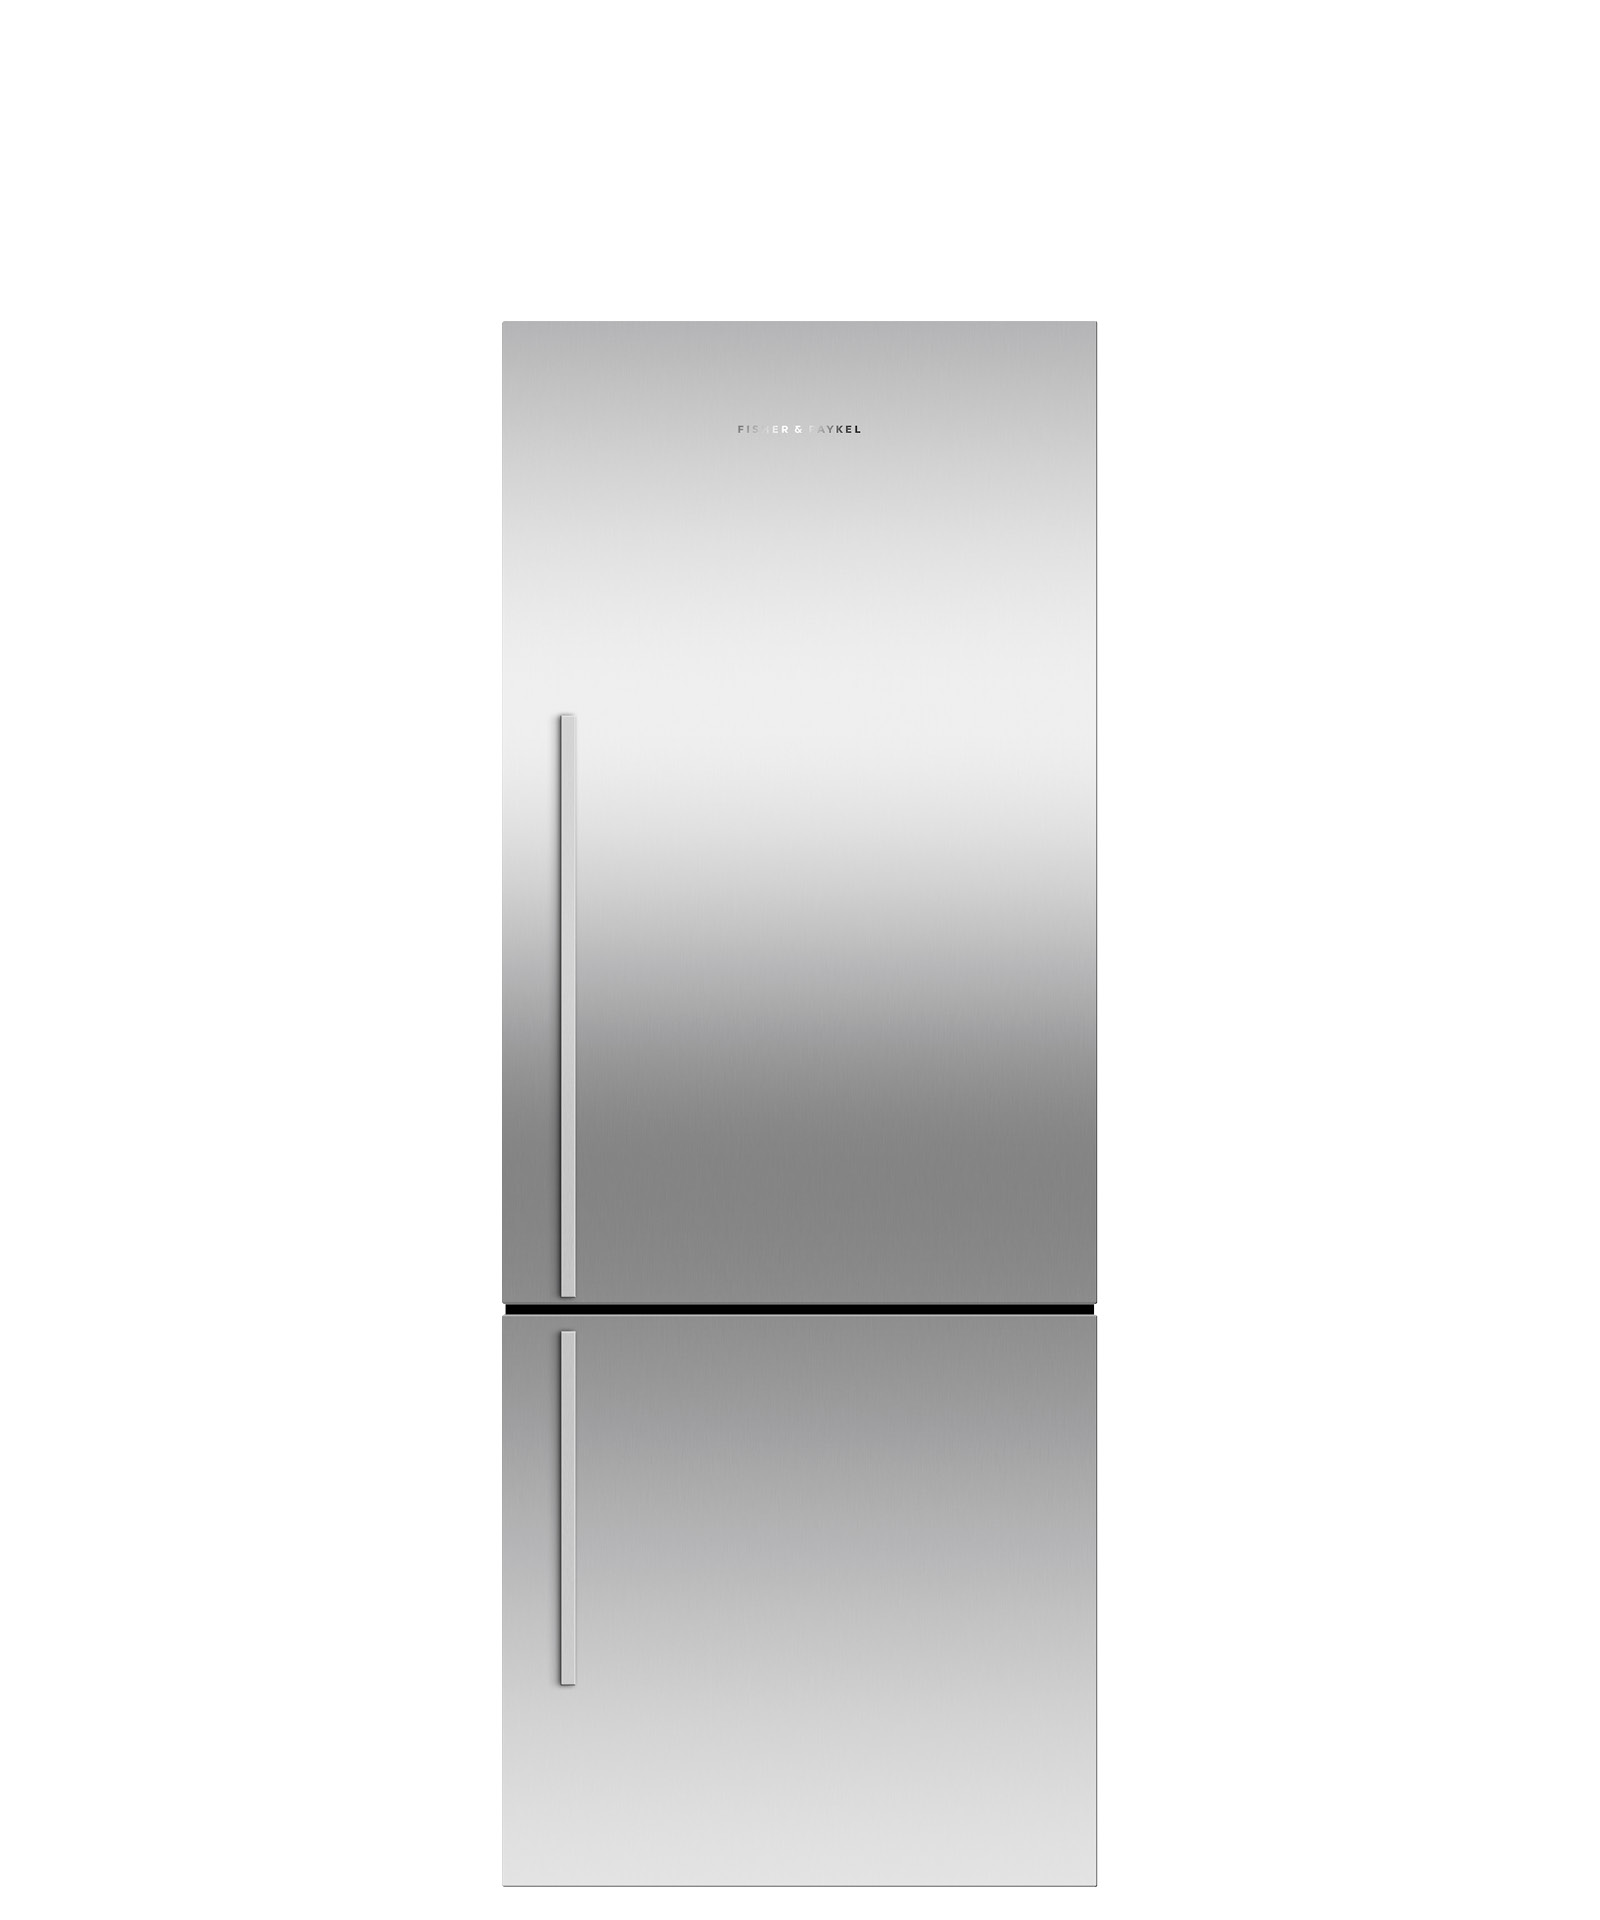 "Fisher and Paykel Freestanding Refrigerator Freezer, 25"", 13.5 cu ft, Ice only"